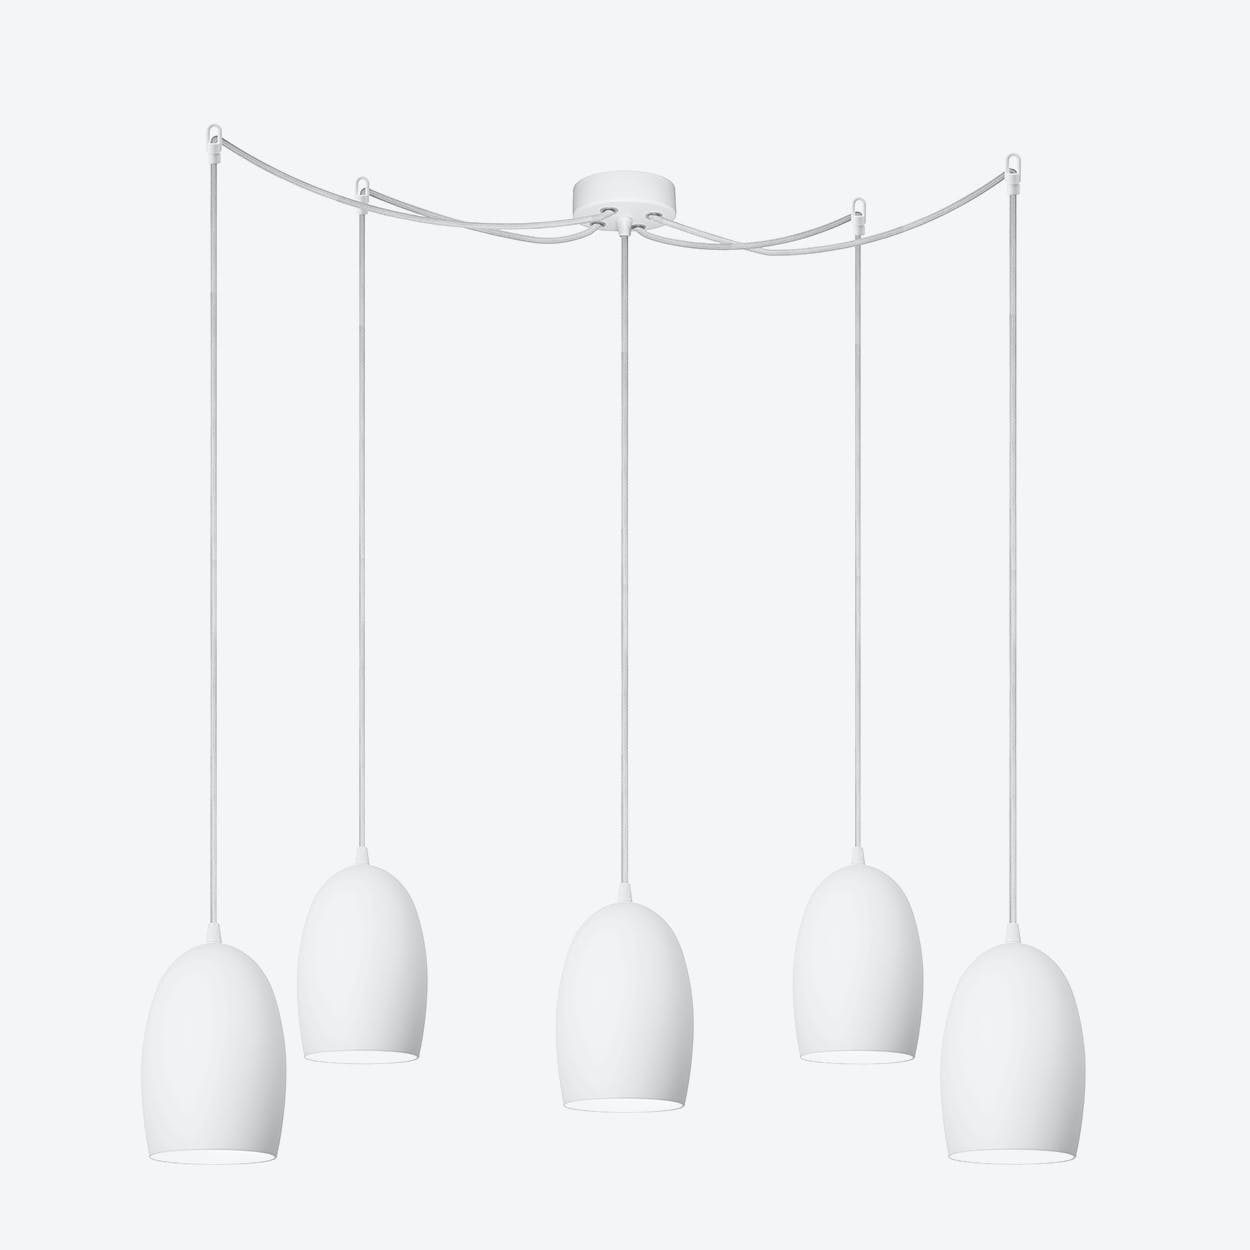 UME 5-Light Pendant Light in Matte Opal